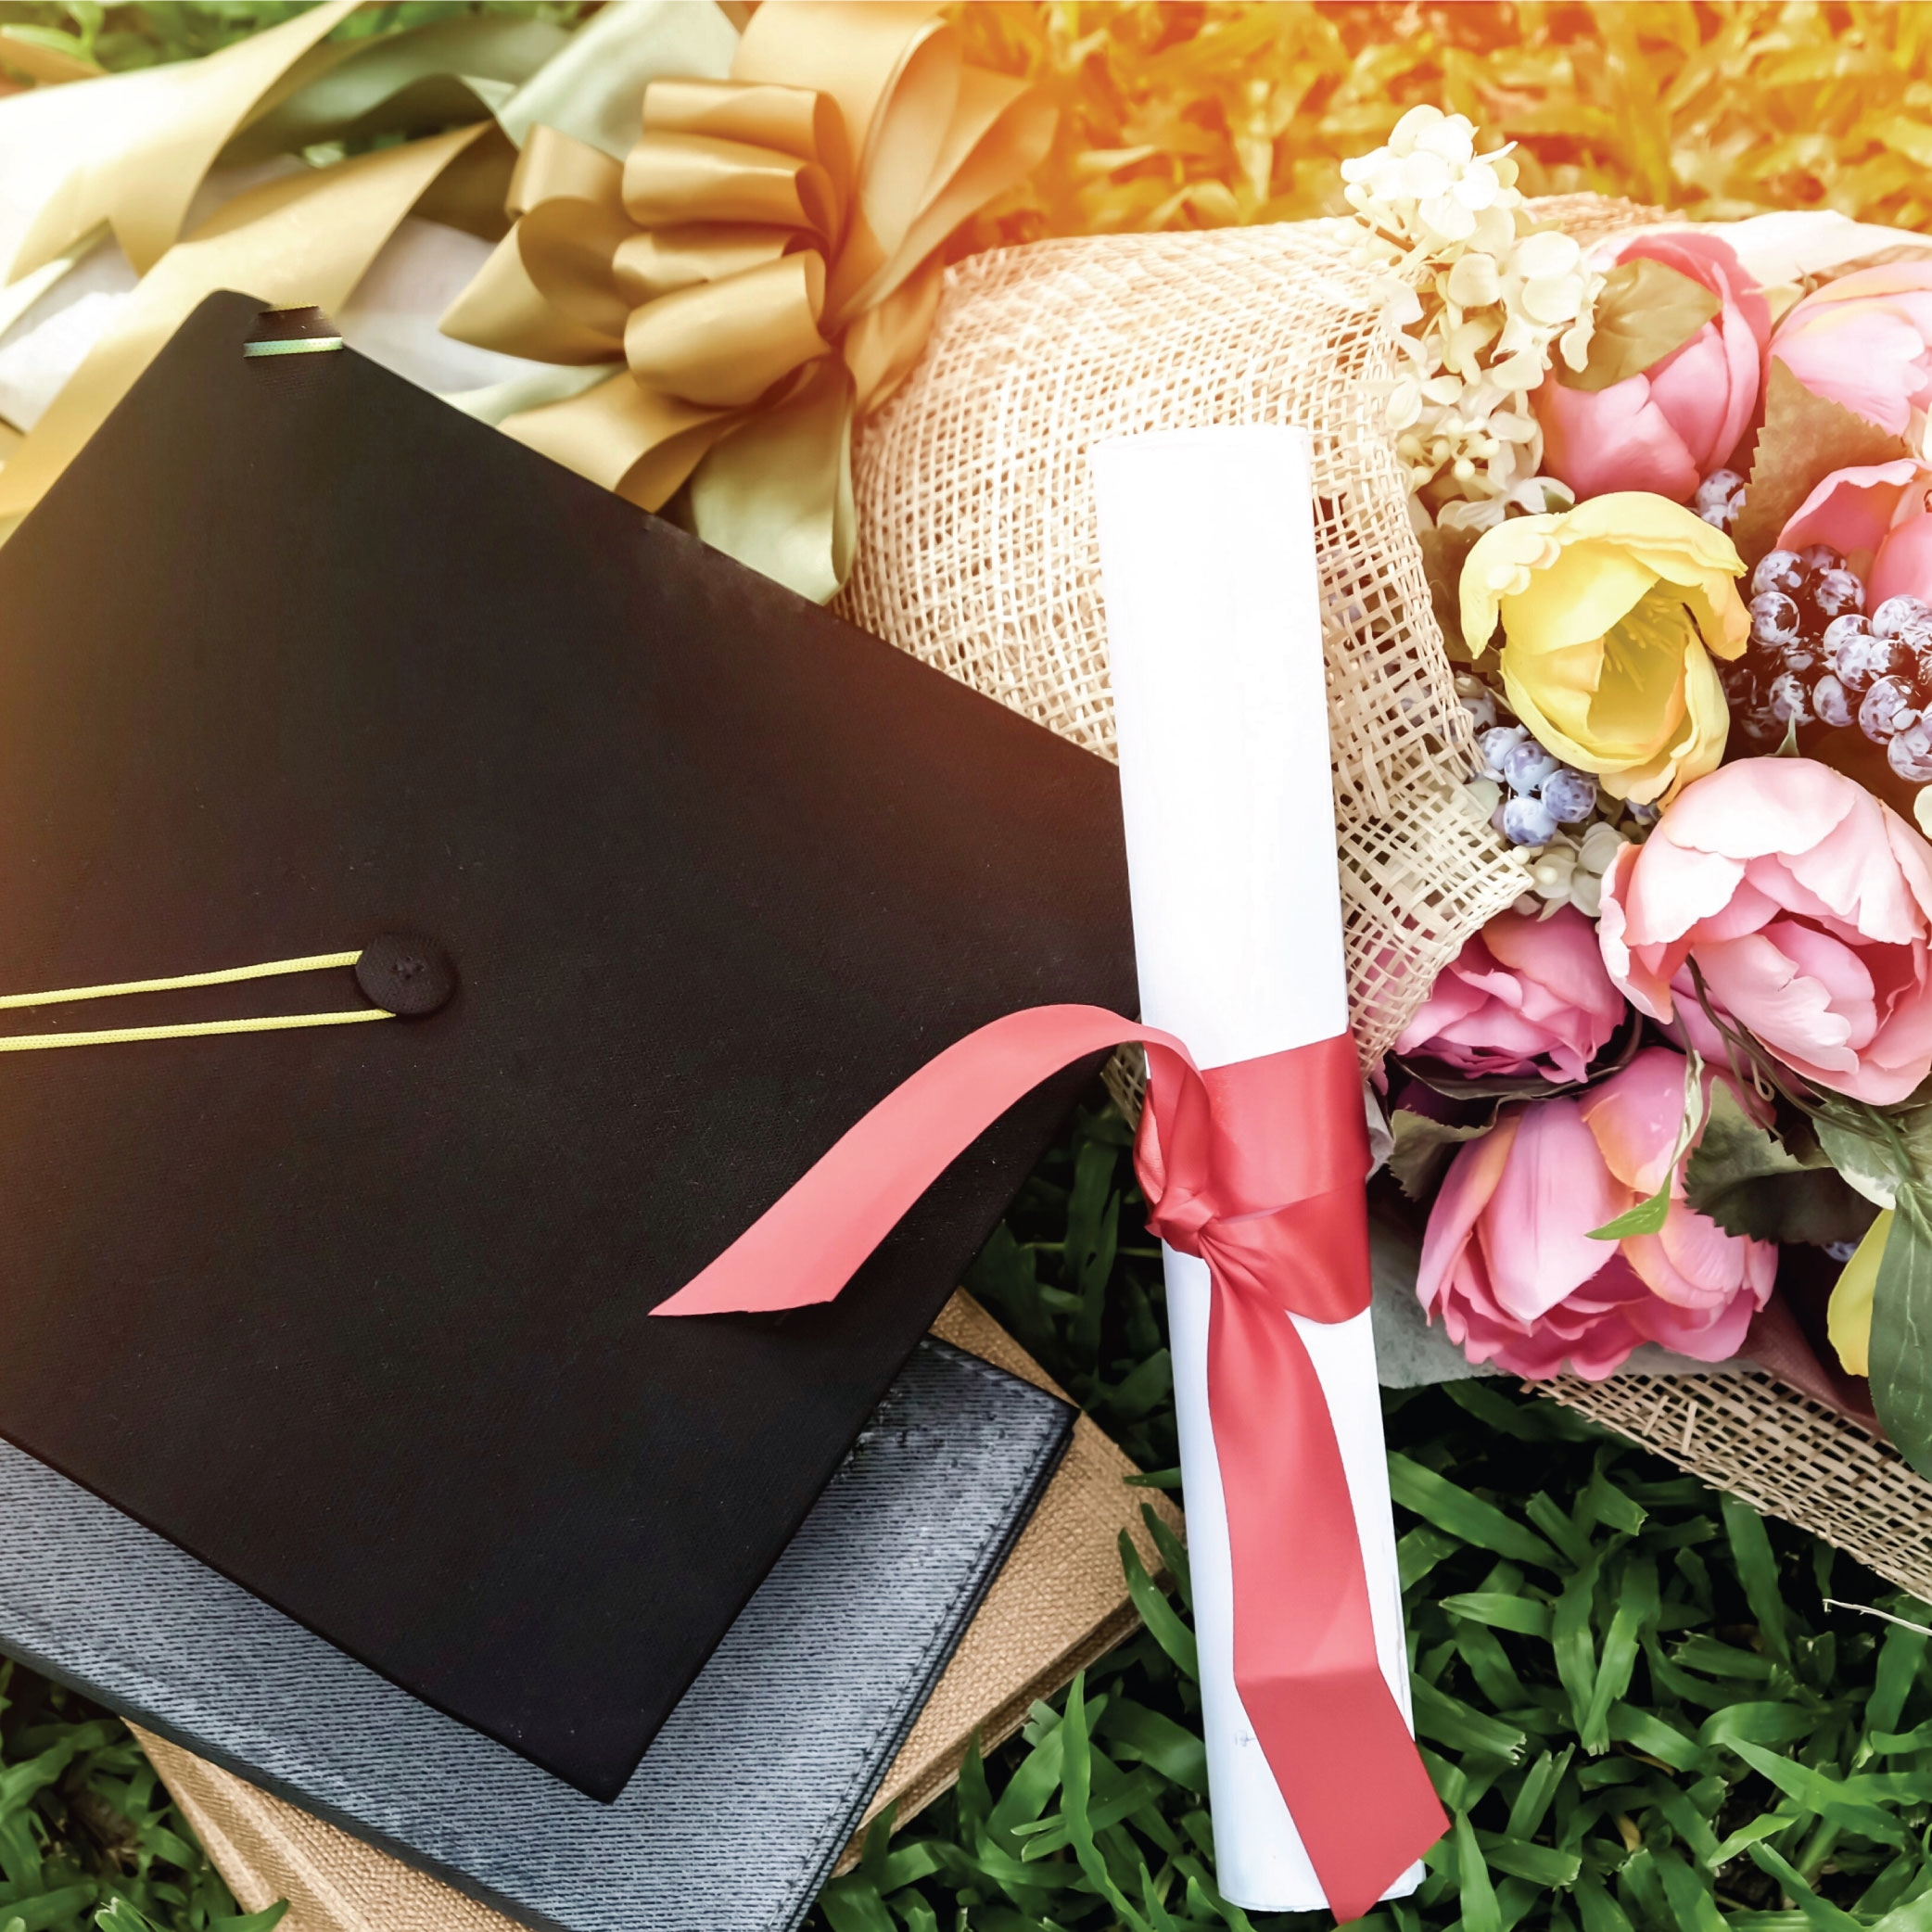 Order Last Minute Graduation Flowers in Singapore